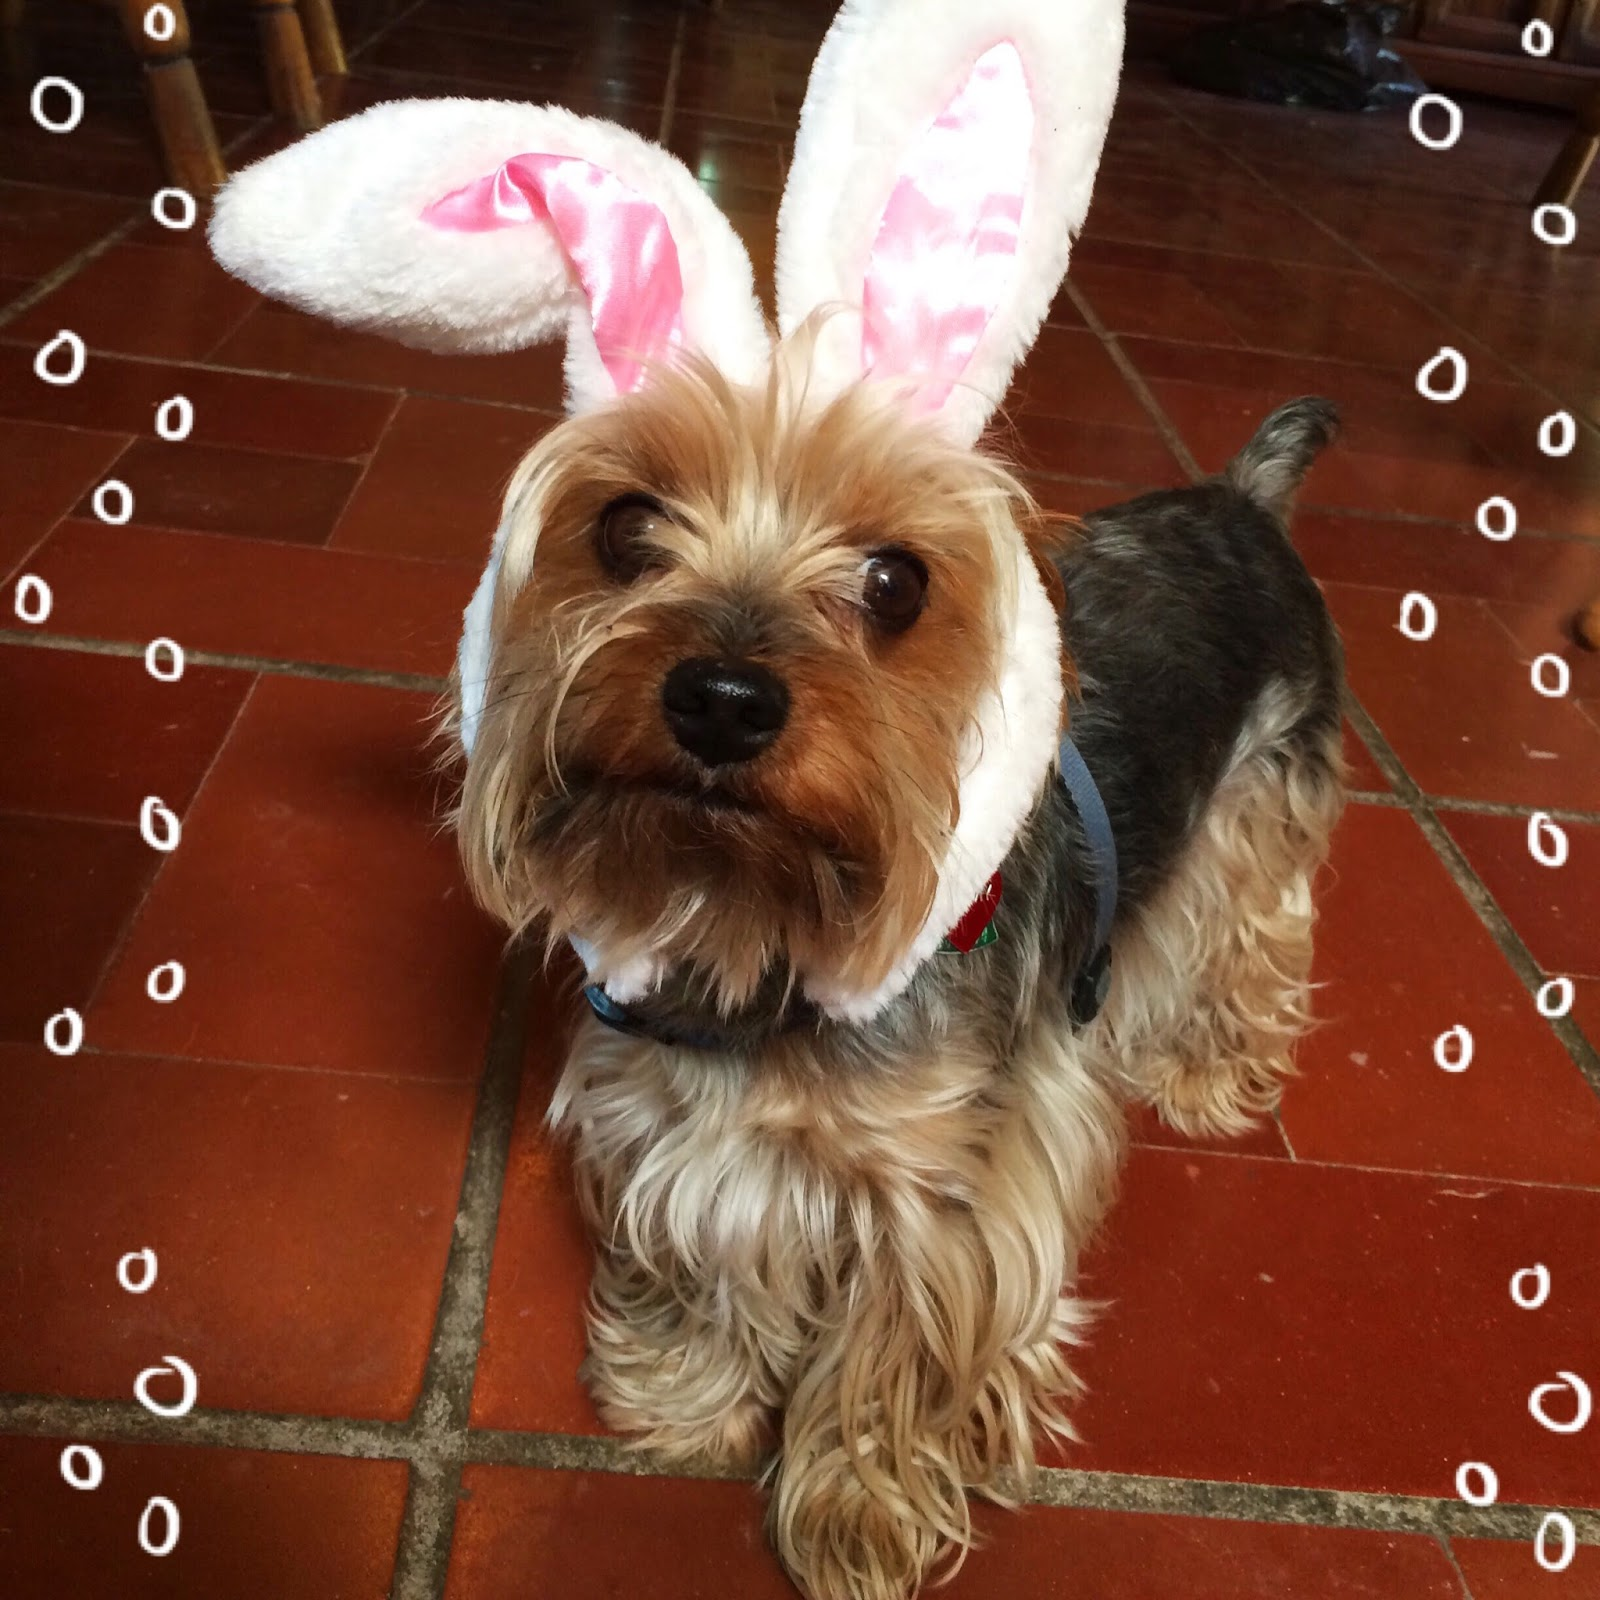 Cutest Easter Bunny Ever!